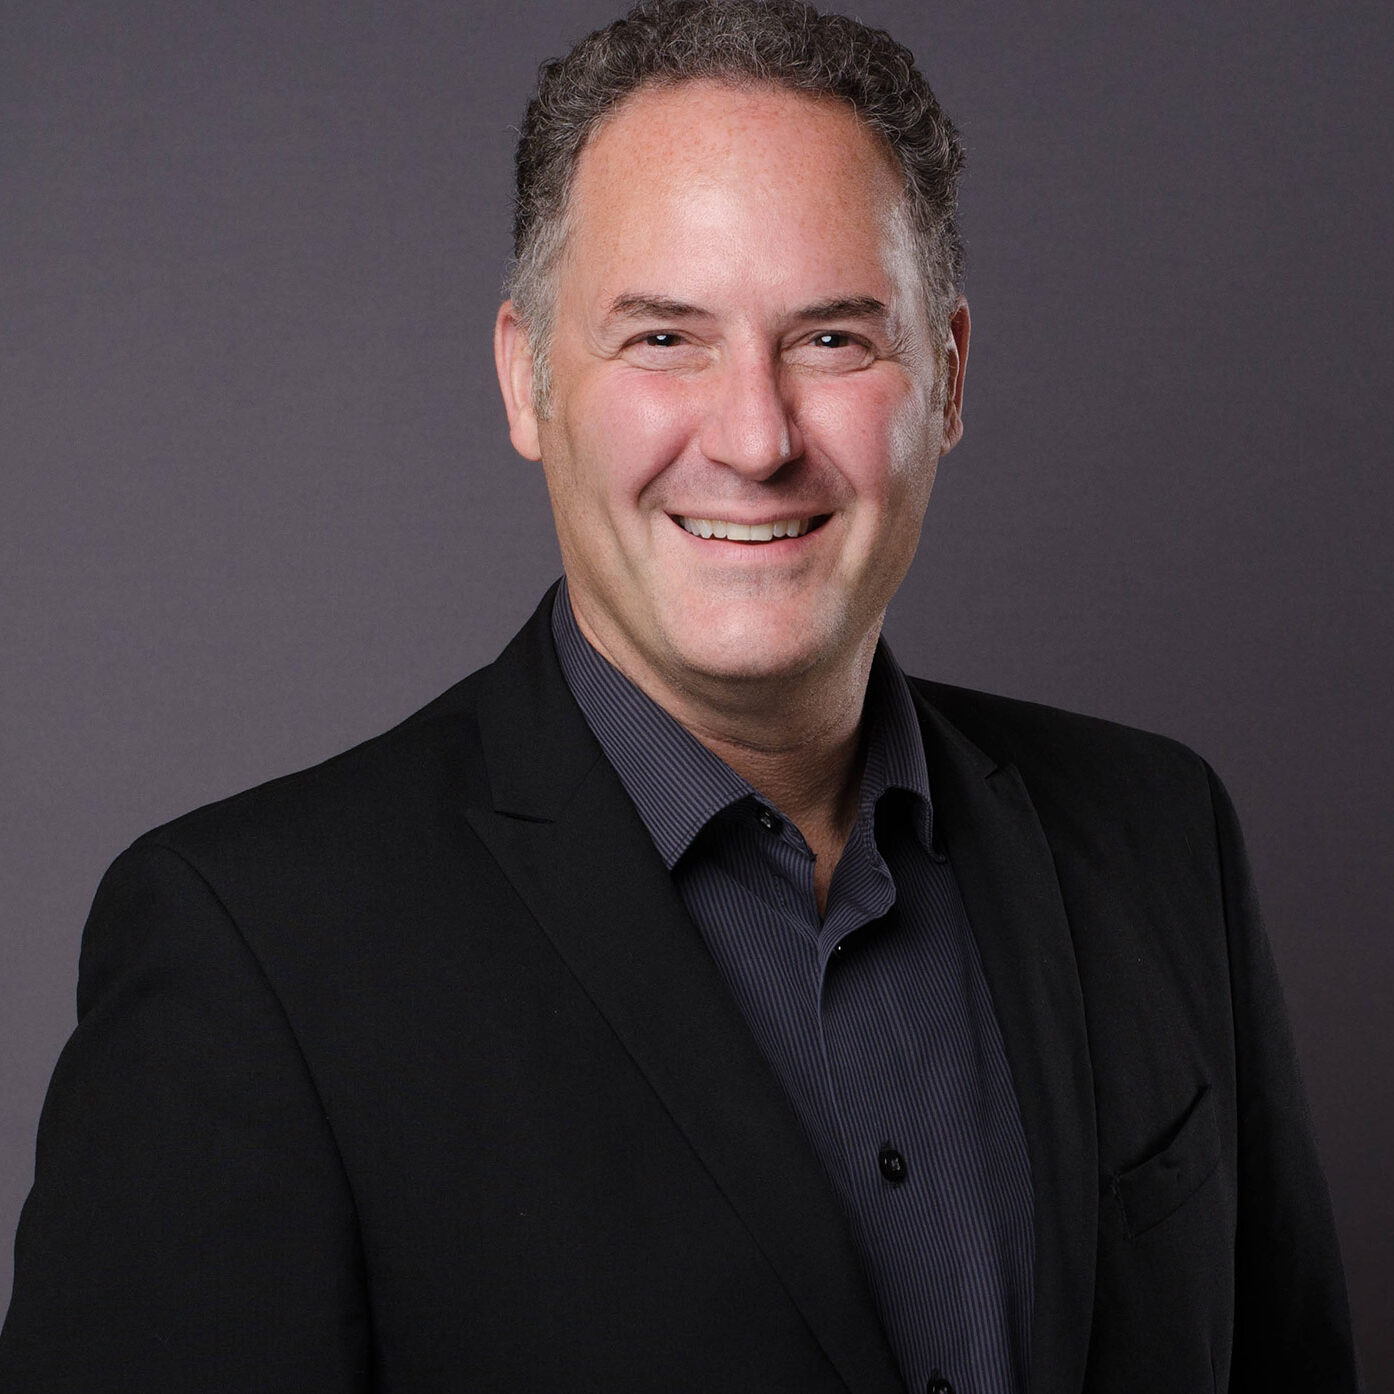 Bryan Laskin Senior Vice President of Innovation At Dental Care Alliance